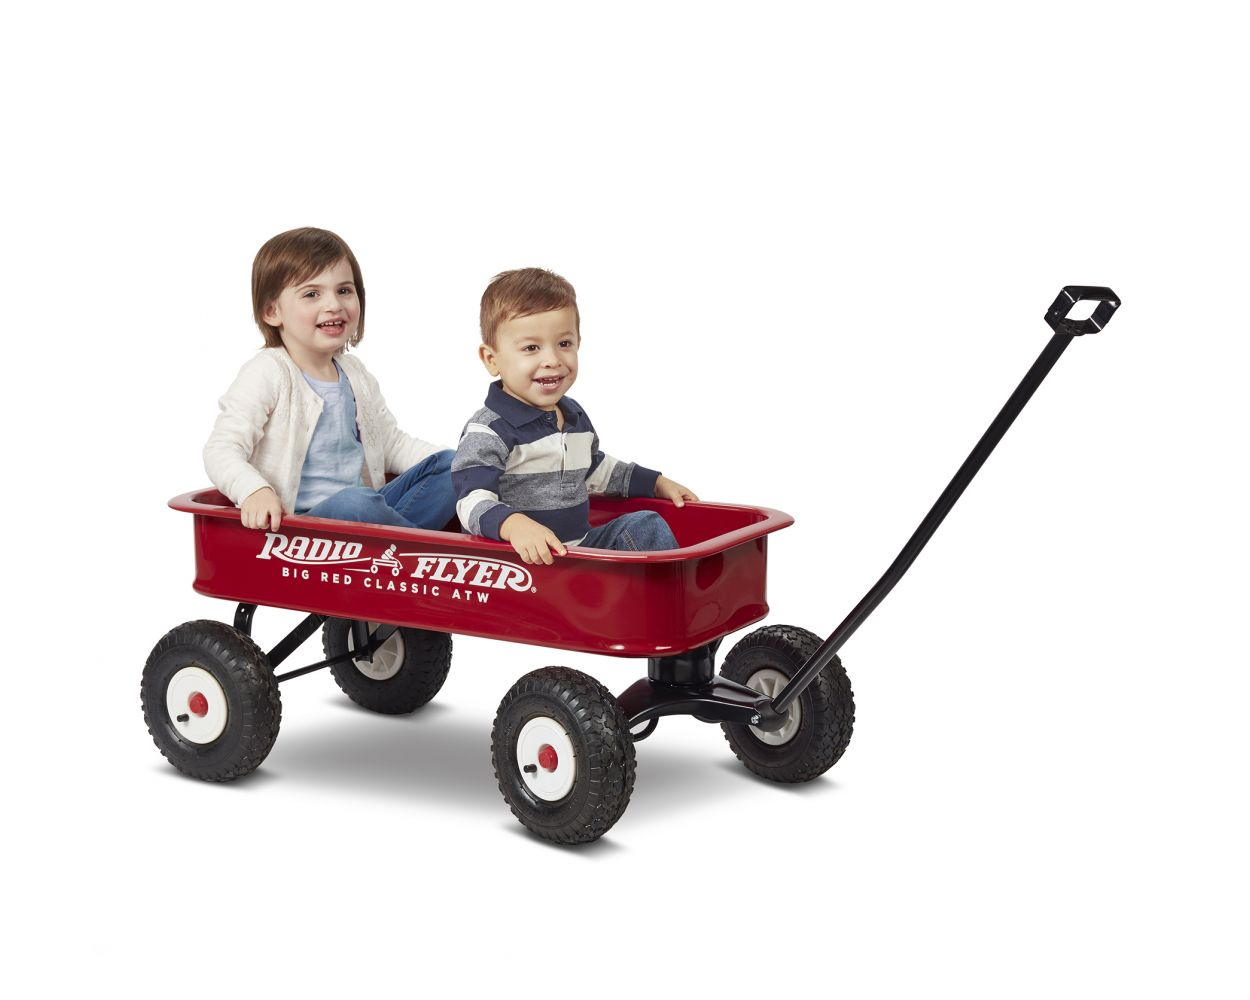 Big Red Wagon Big Red Classic Atw Large Size Radio Flyer